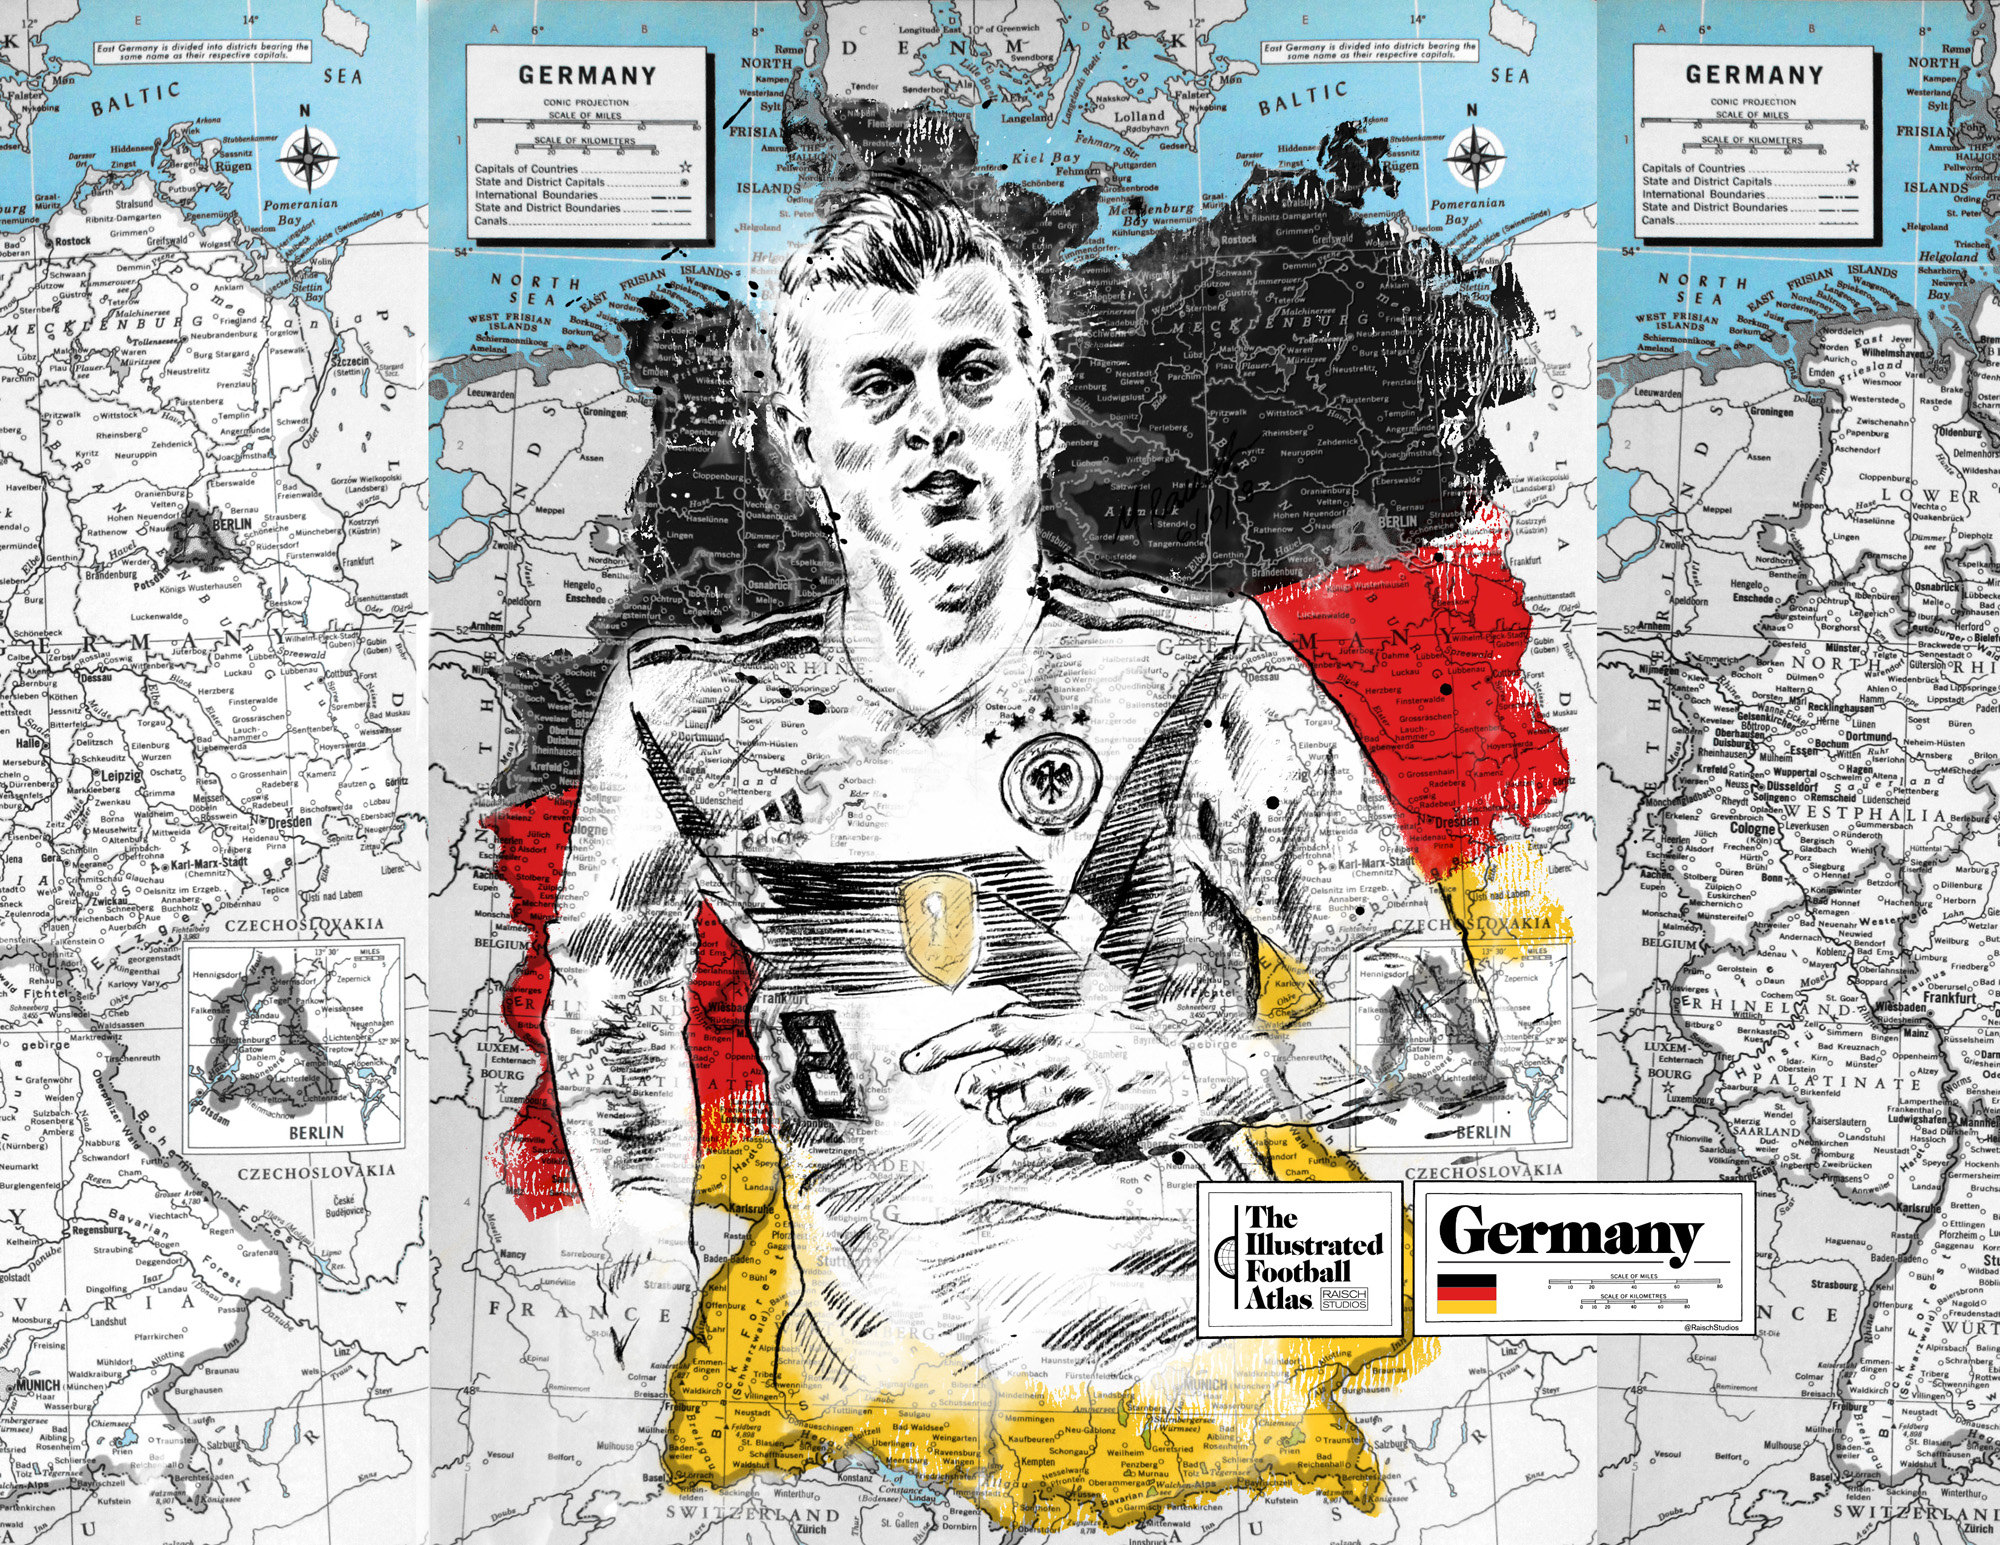 Germany_FootballAtlas_HighRes-RaischA.jpg